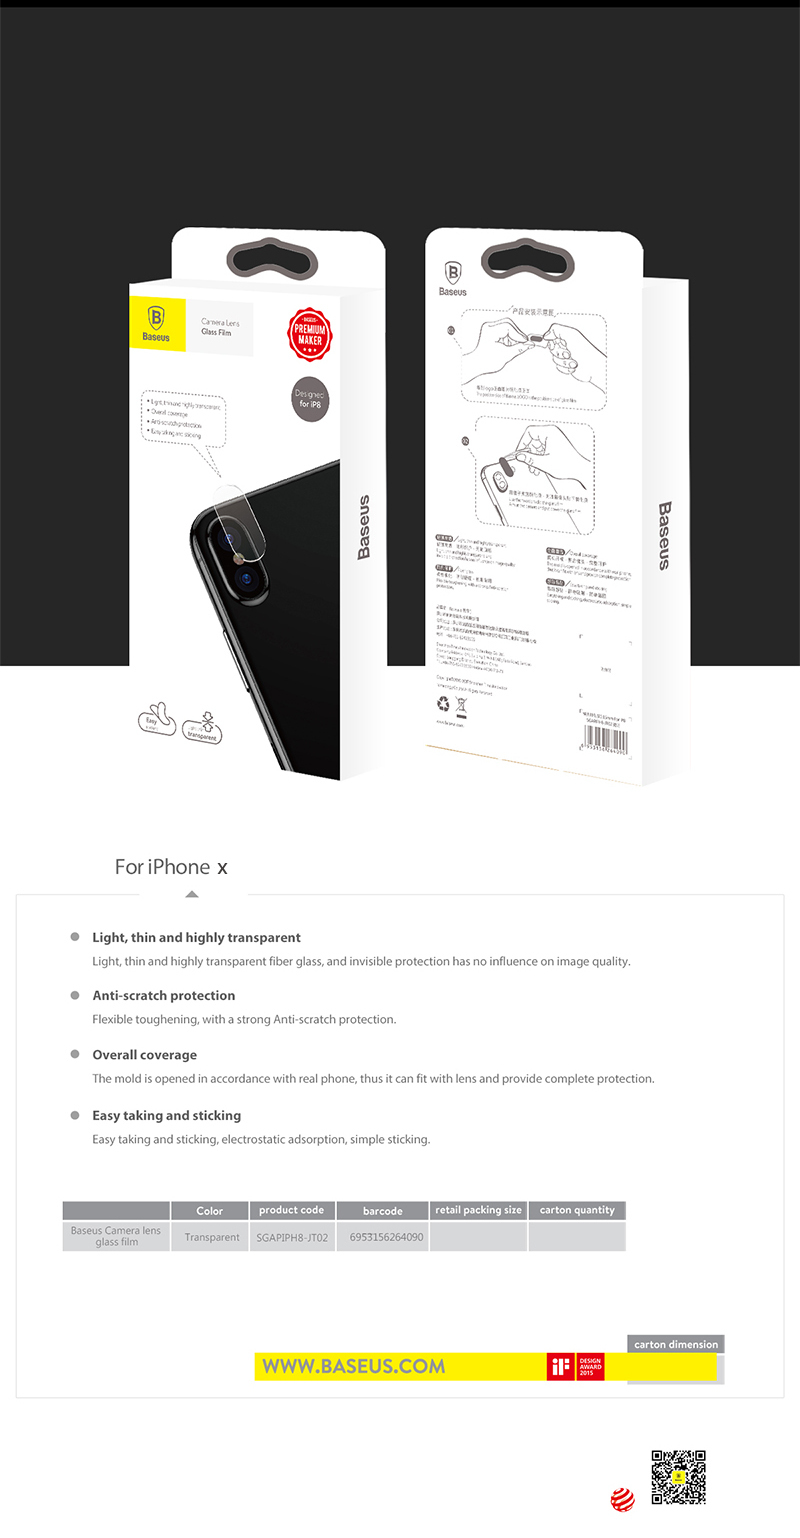 Baseus 015mm Back Cover Camera Lens Tempered Glass Protector Film Home Key Fingerprint Recognition Iphone Ipad Ios More Detail